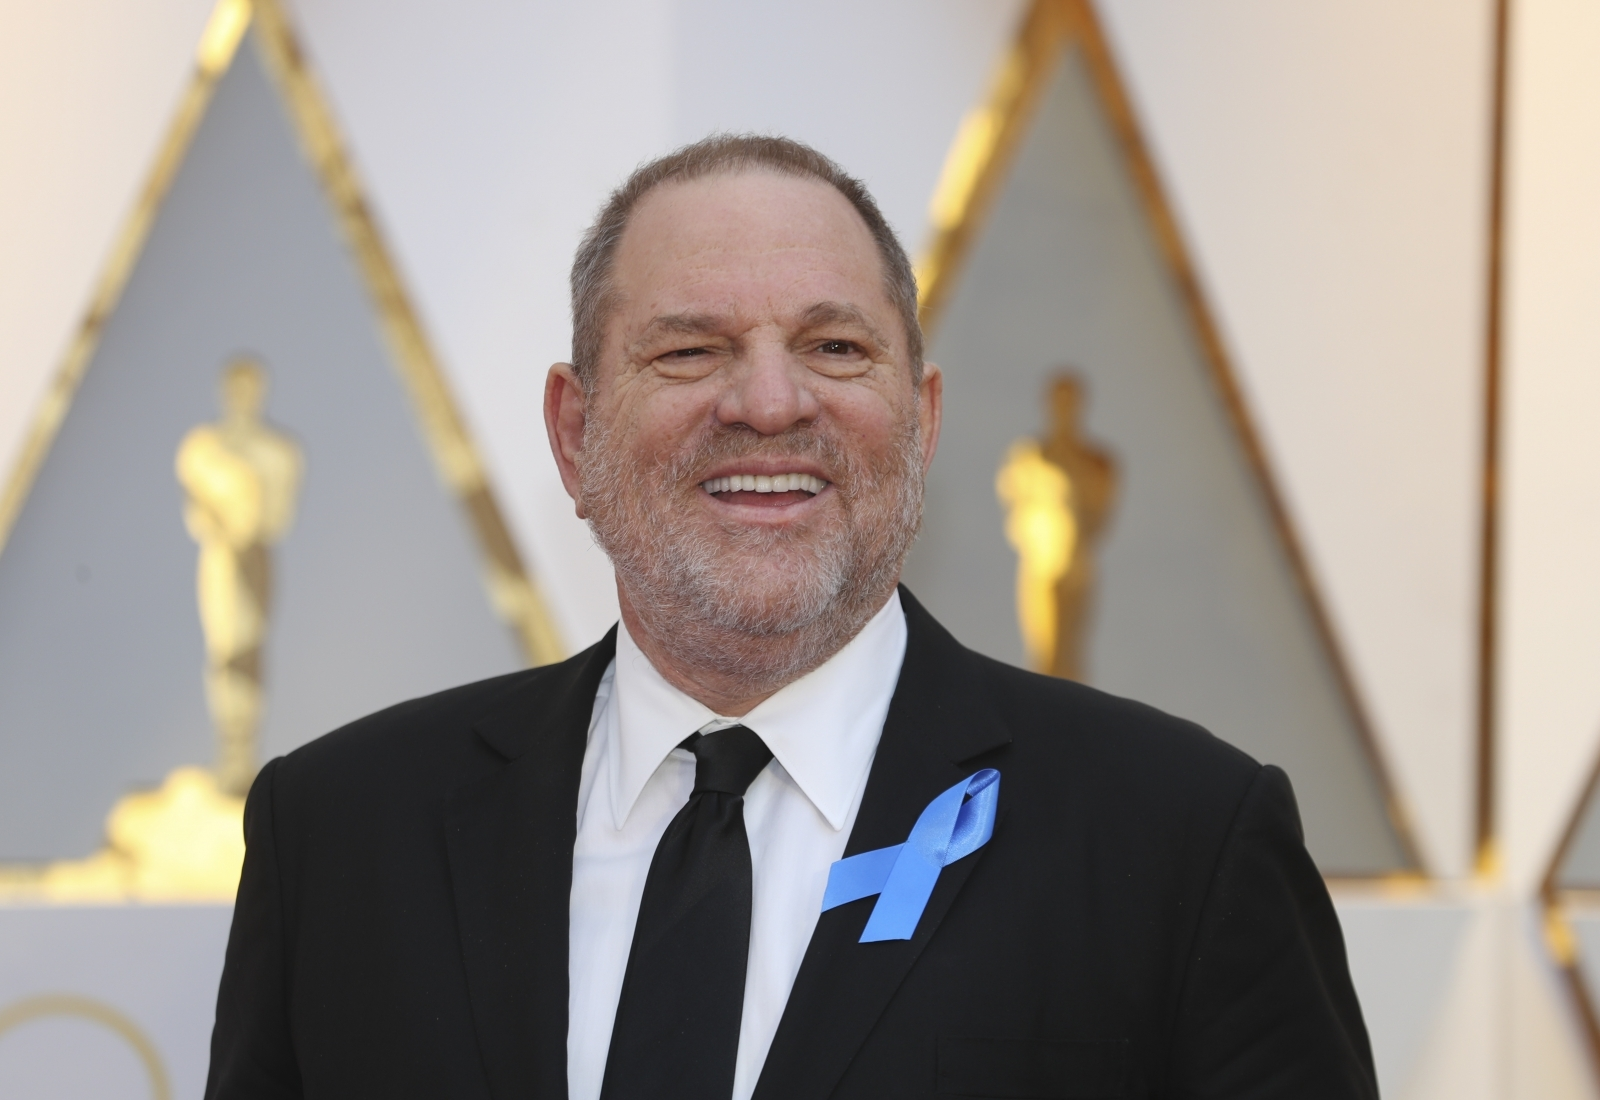 Harvey Weinstein is fired from the Weinstein Company amid sexual harassment accusations